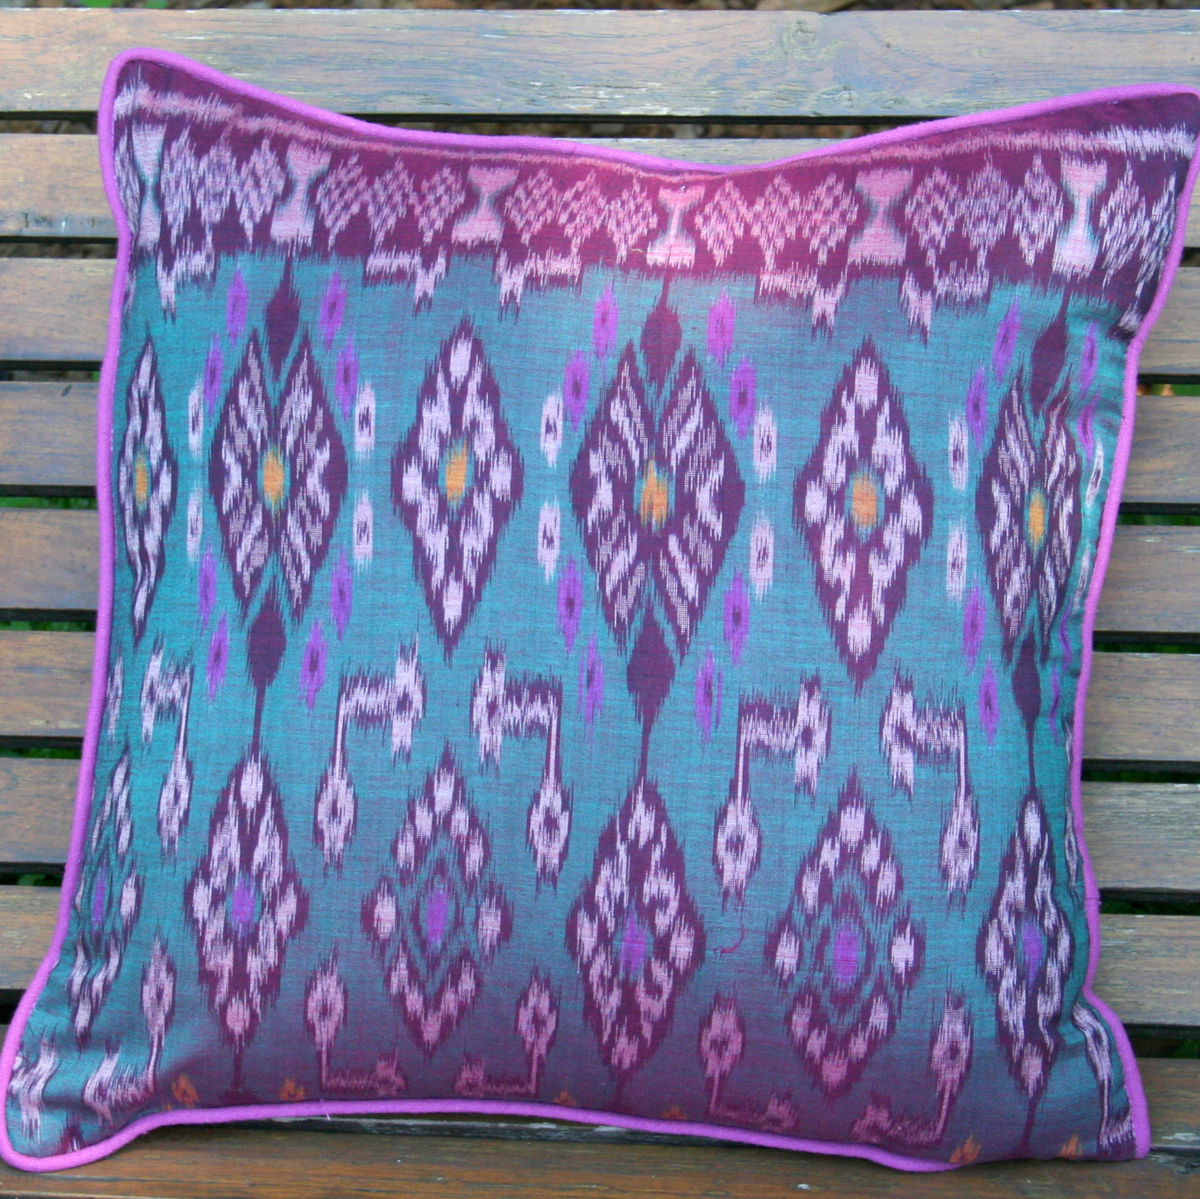 Indonesian Ikat Pillows, 20 inch Or 16 inch Pillows / Cushions - product images  of